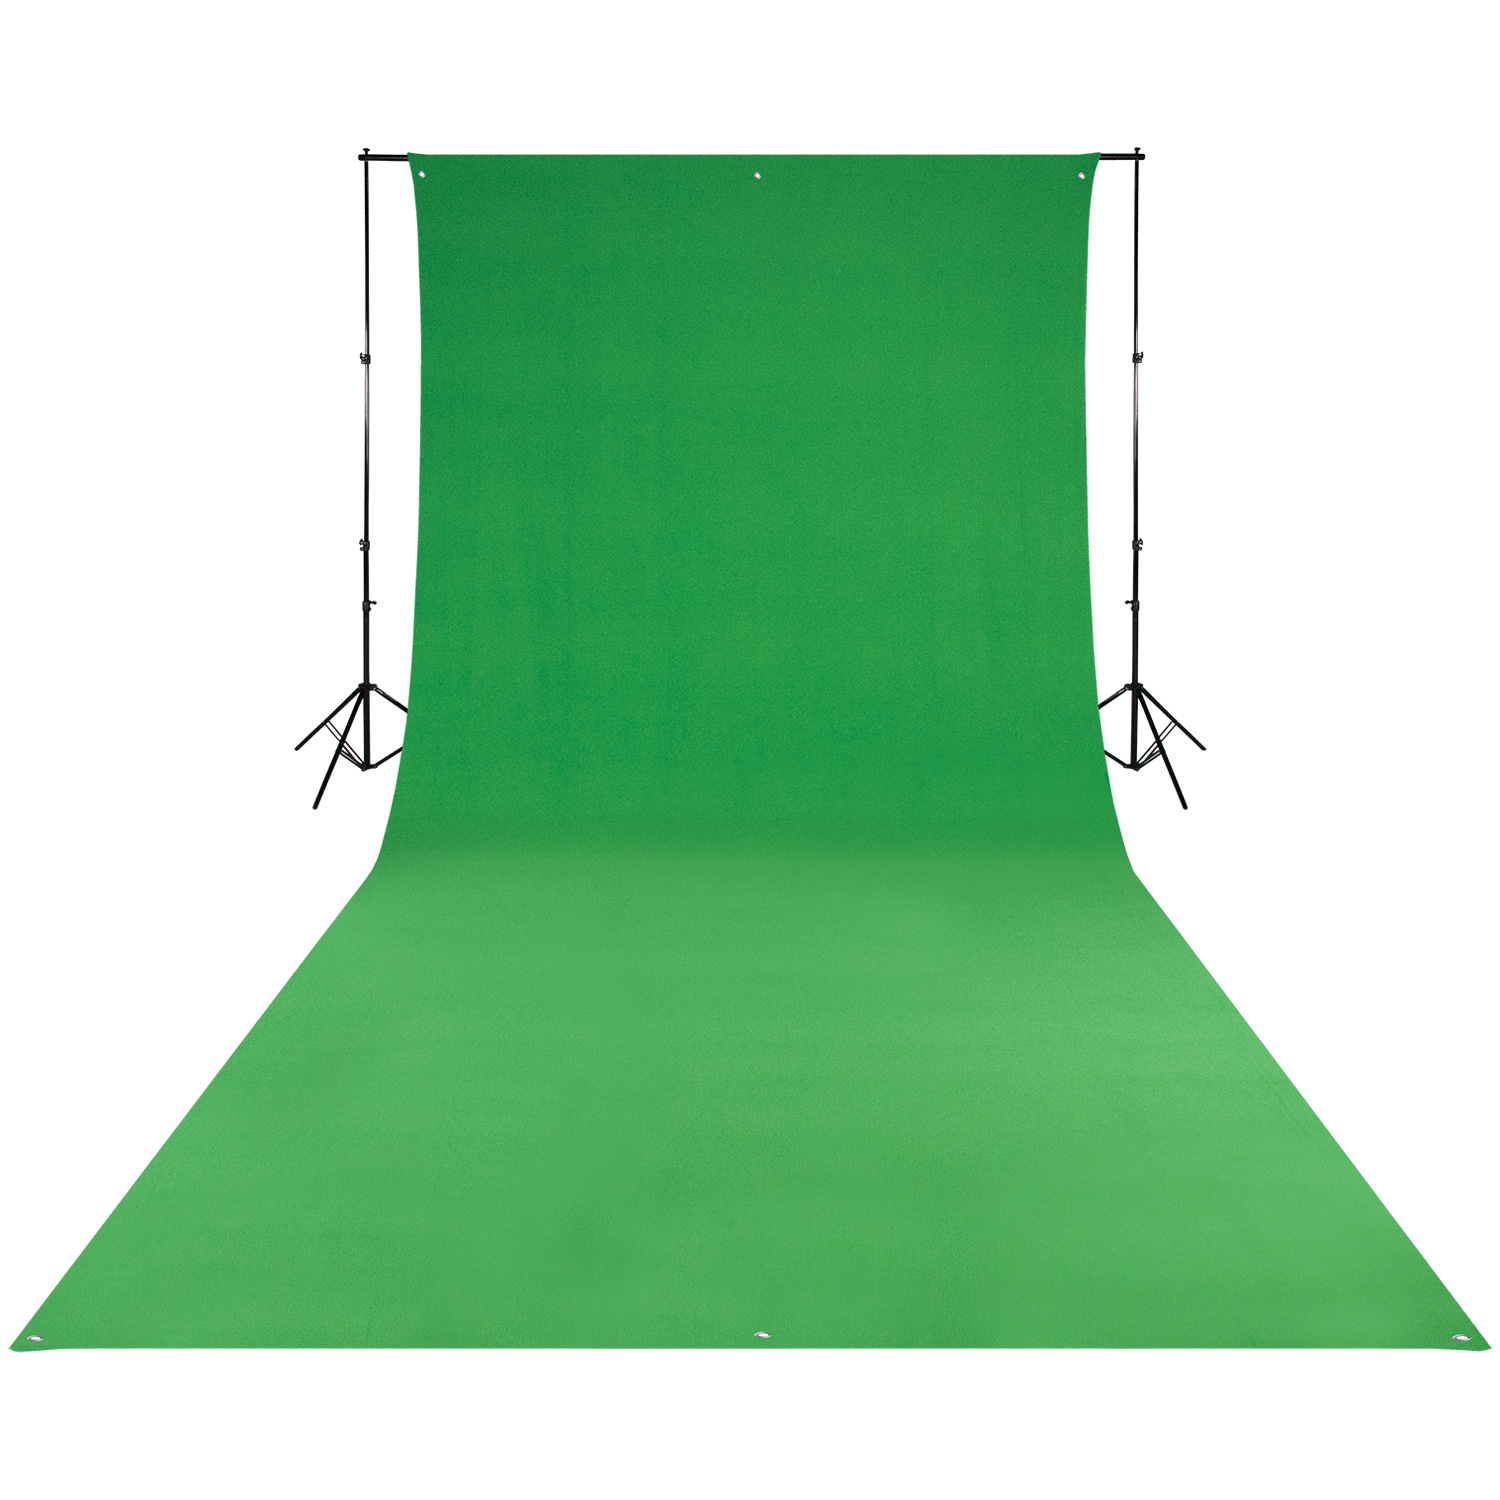 9' x 20' Green Screen Background